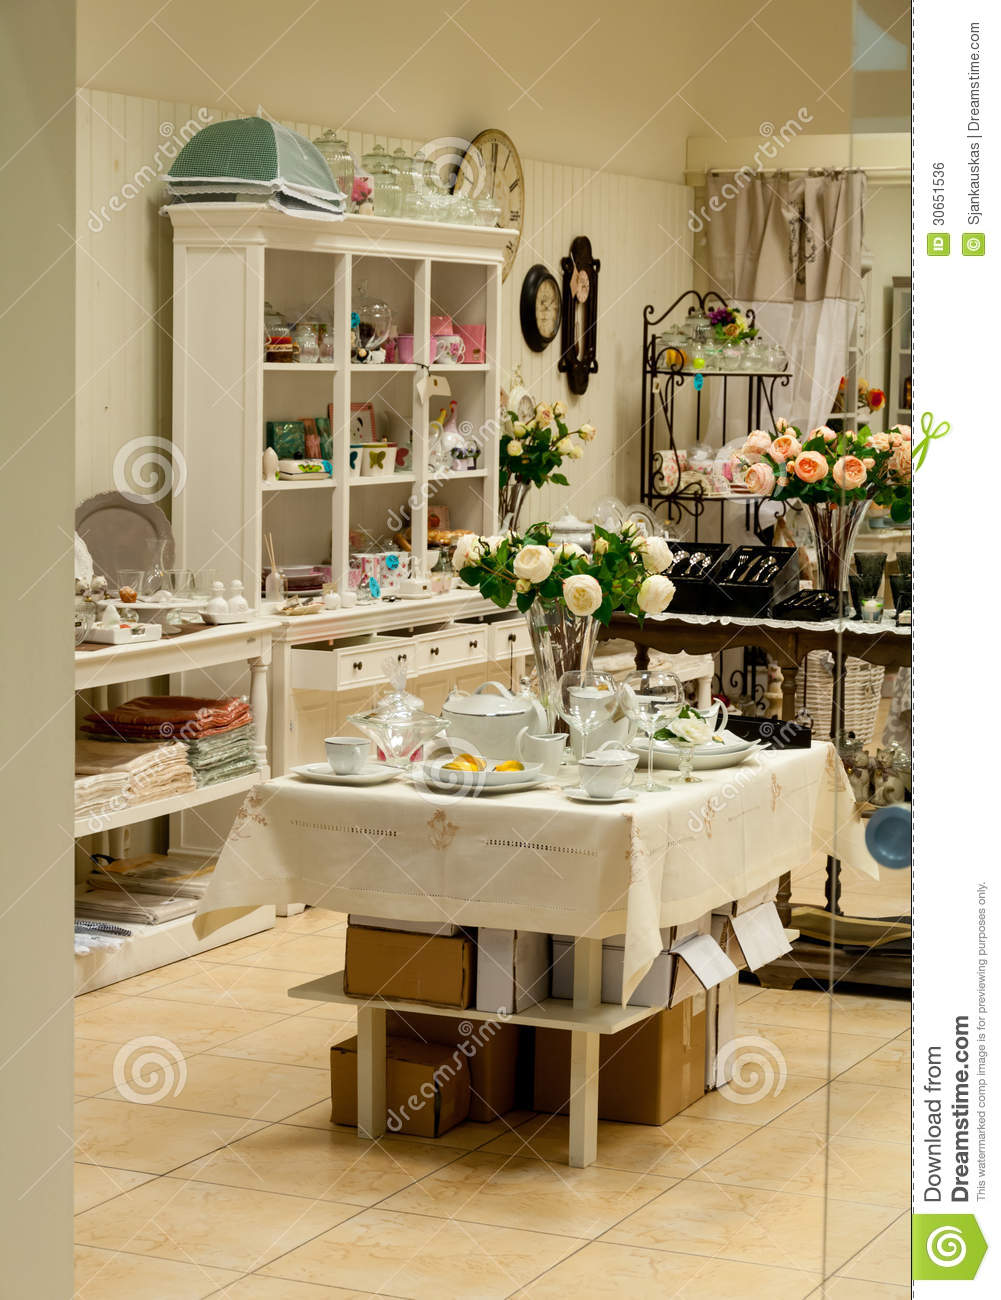 Home decor and dishes shop royalty free stock image for Home decorative accessories shopping